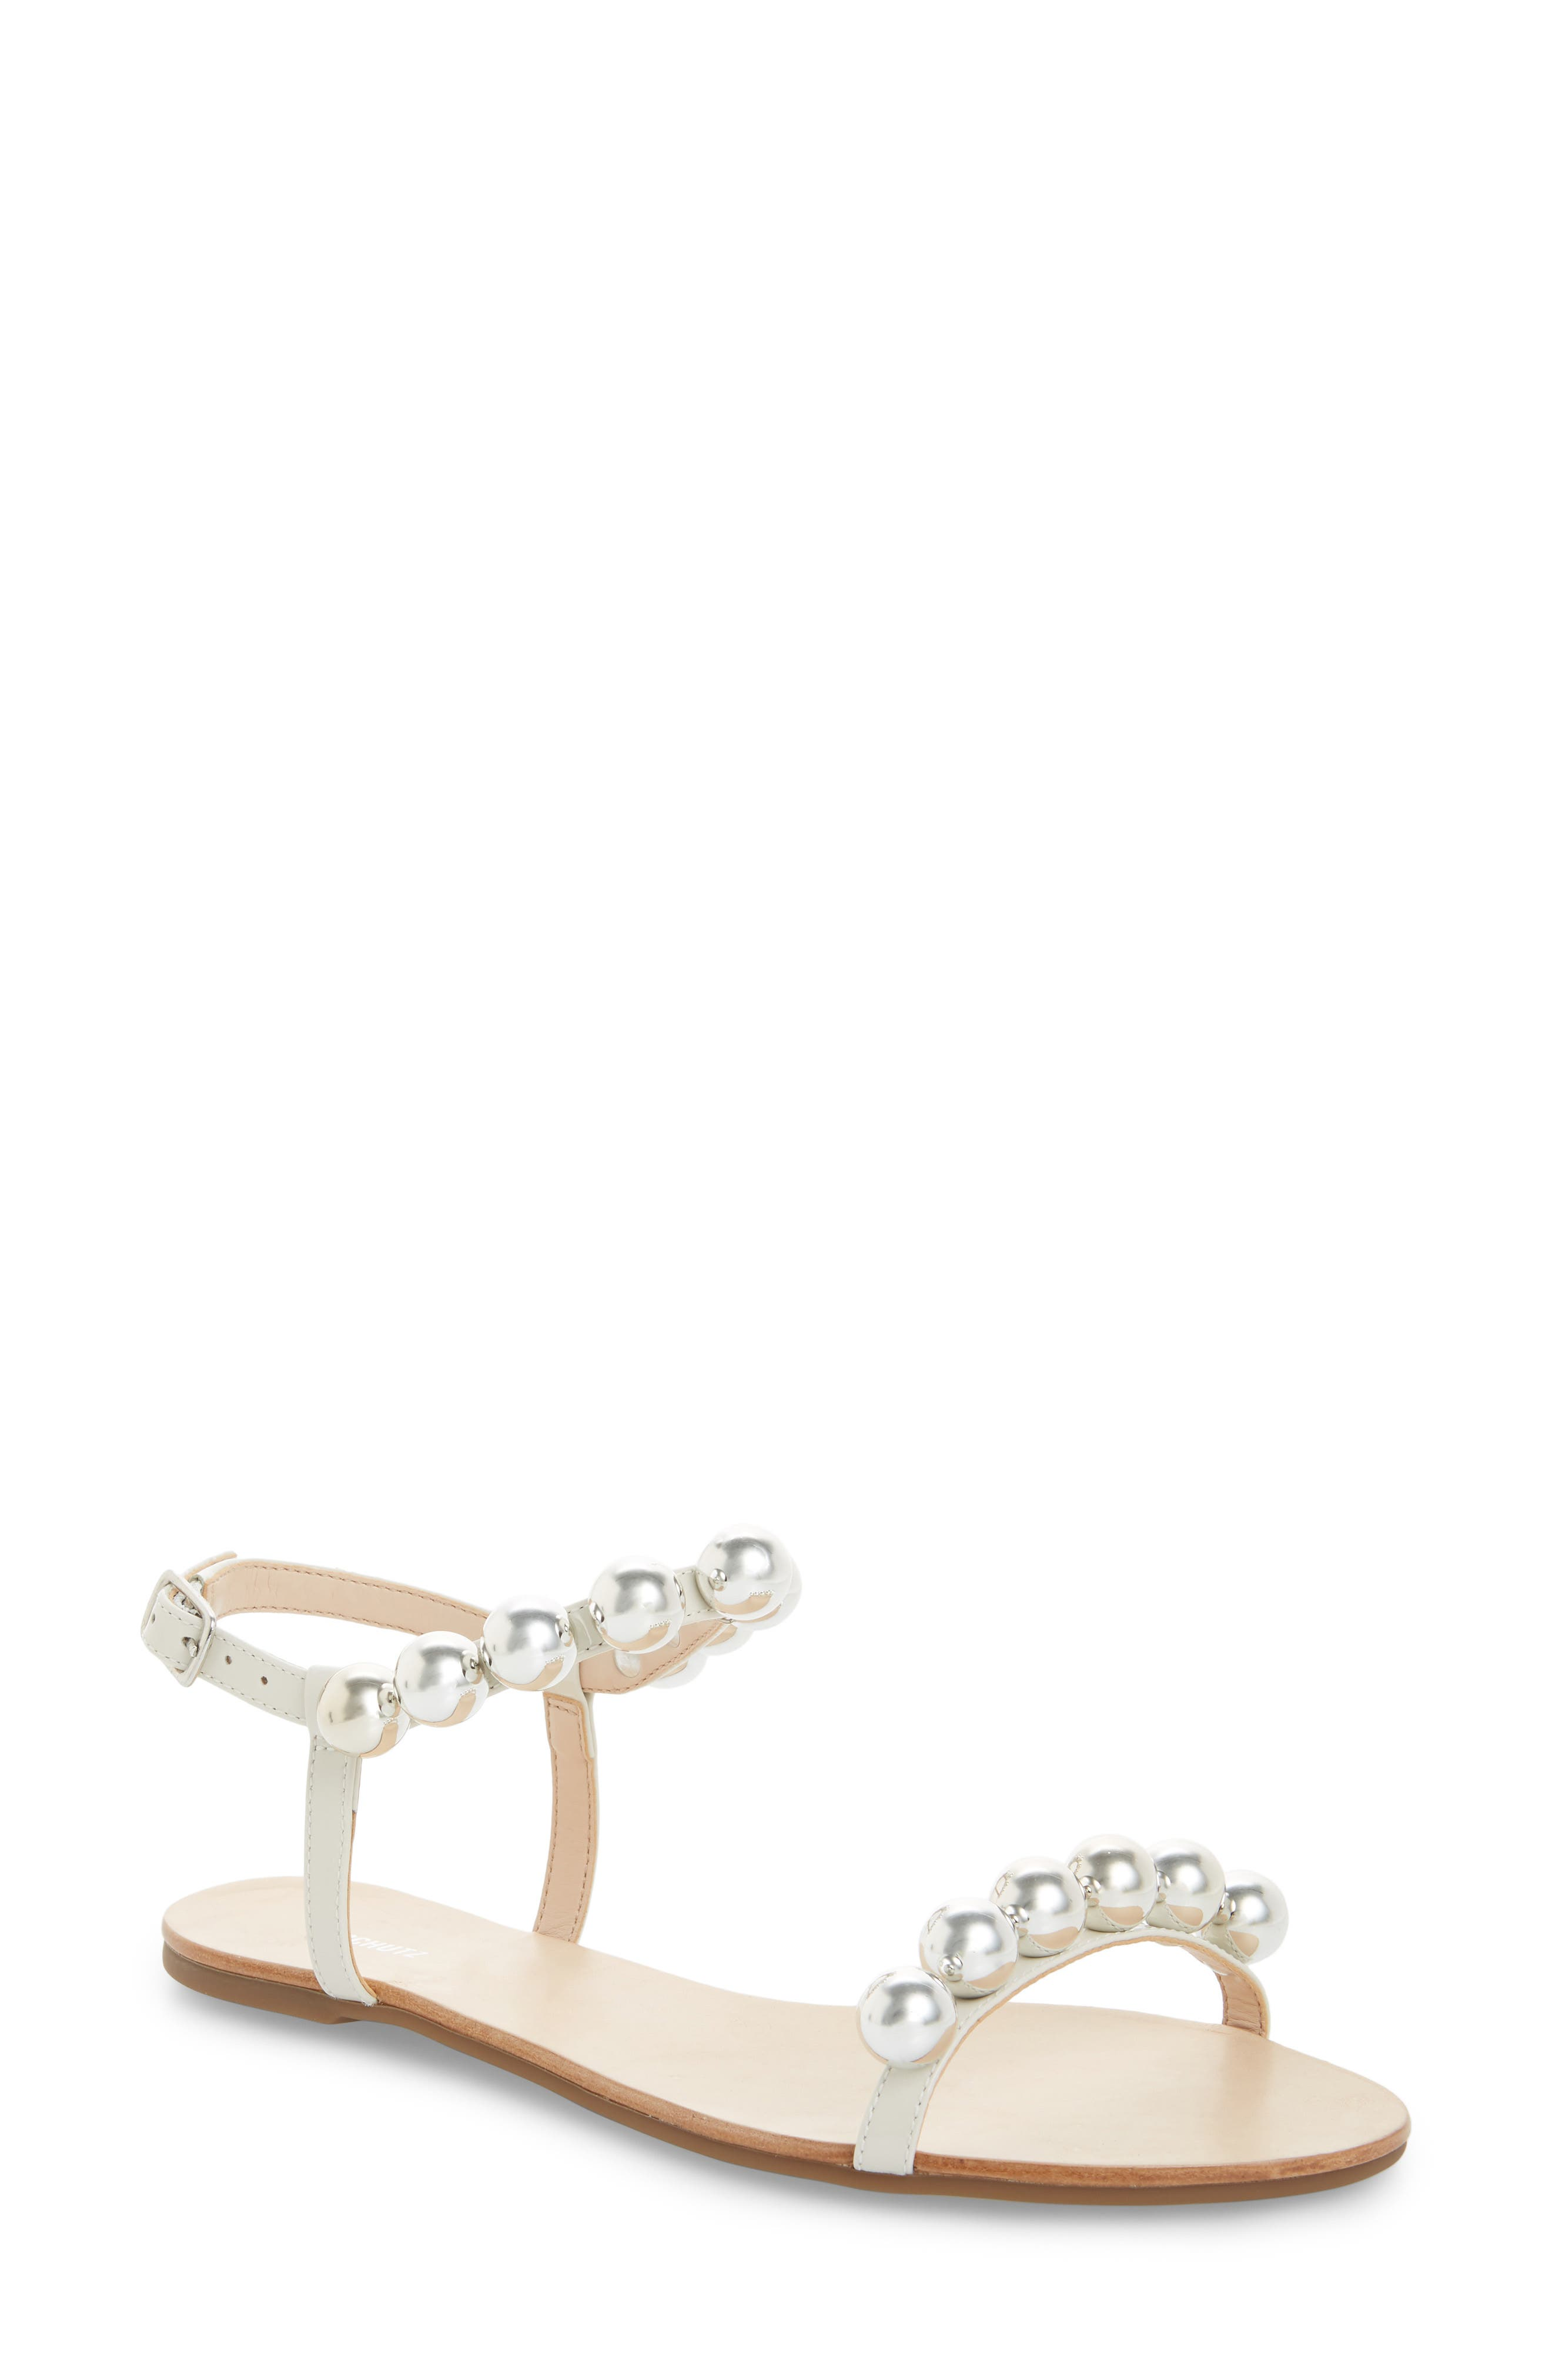 Hebe Ankle Strap Sandal,                         Main,                         color, PEARL LEATHER